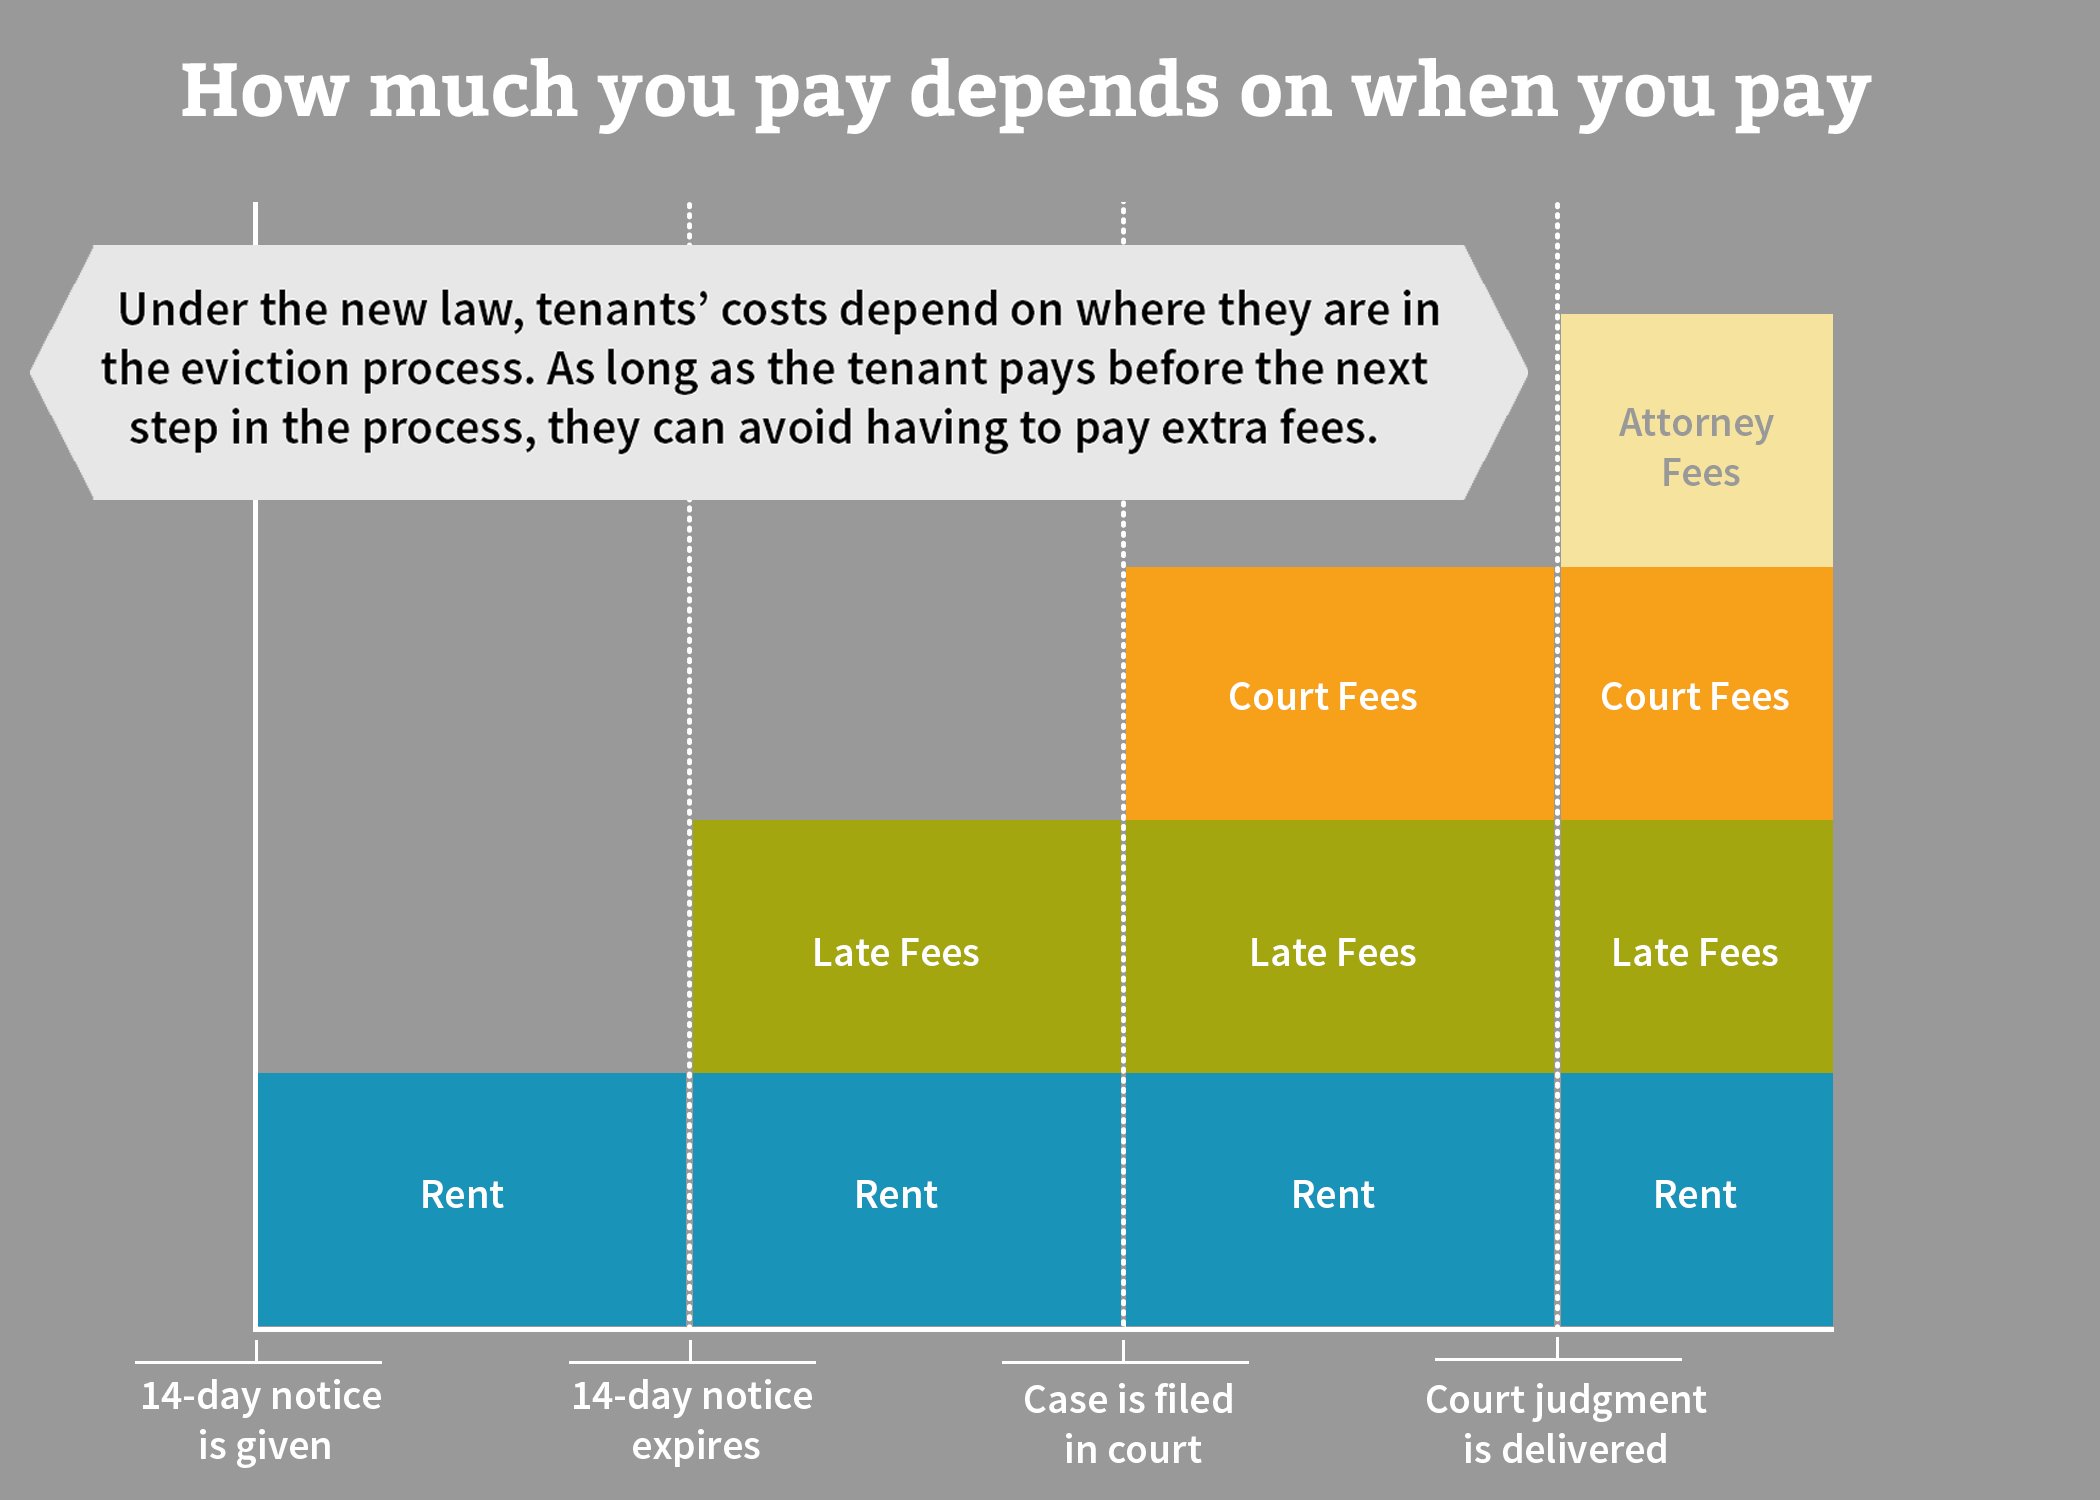 Graphic showing the costs that tenants are liable for at each step of the eviction process